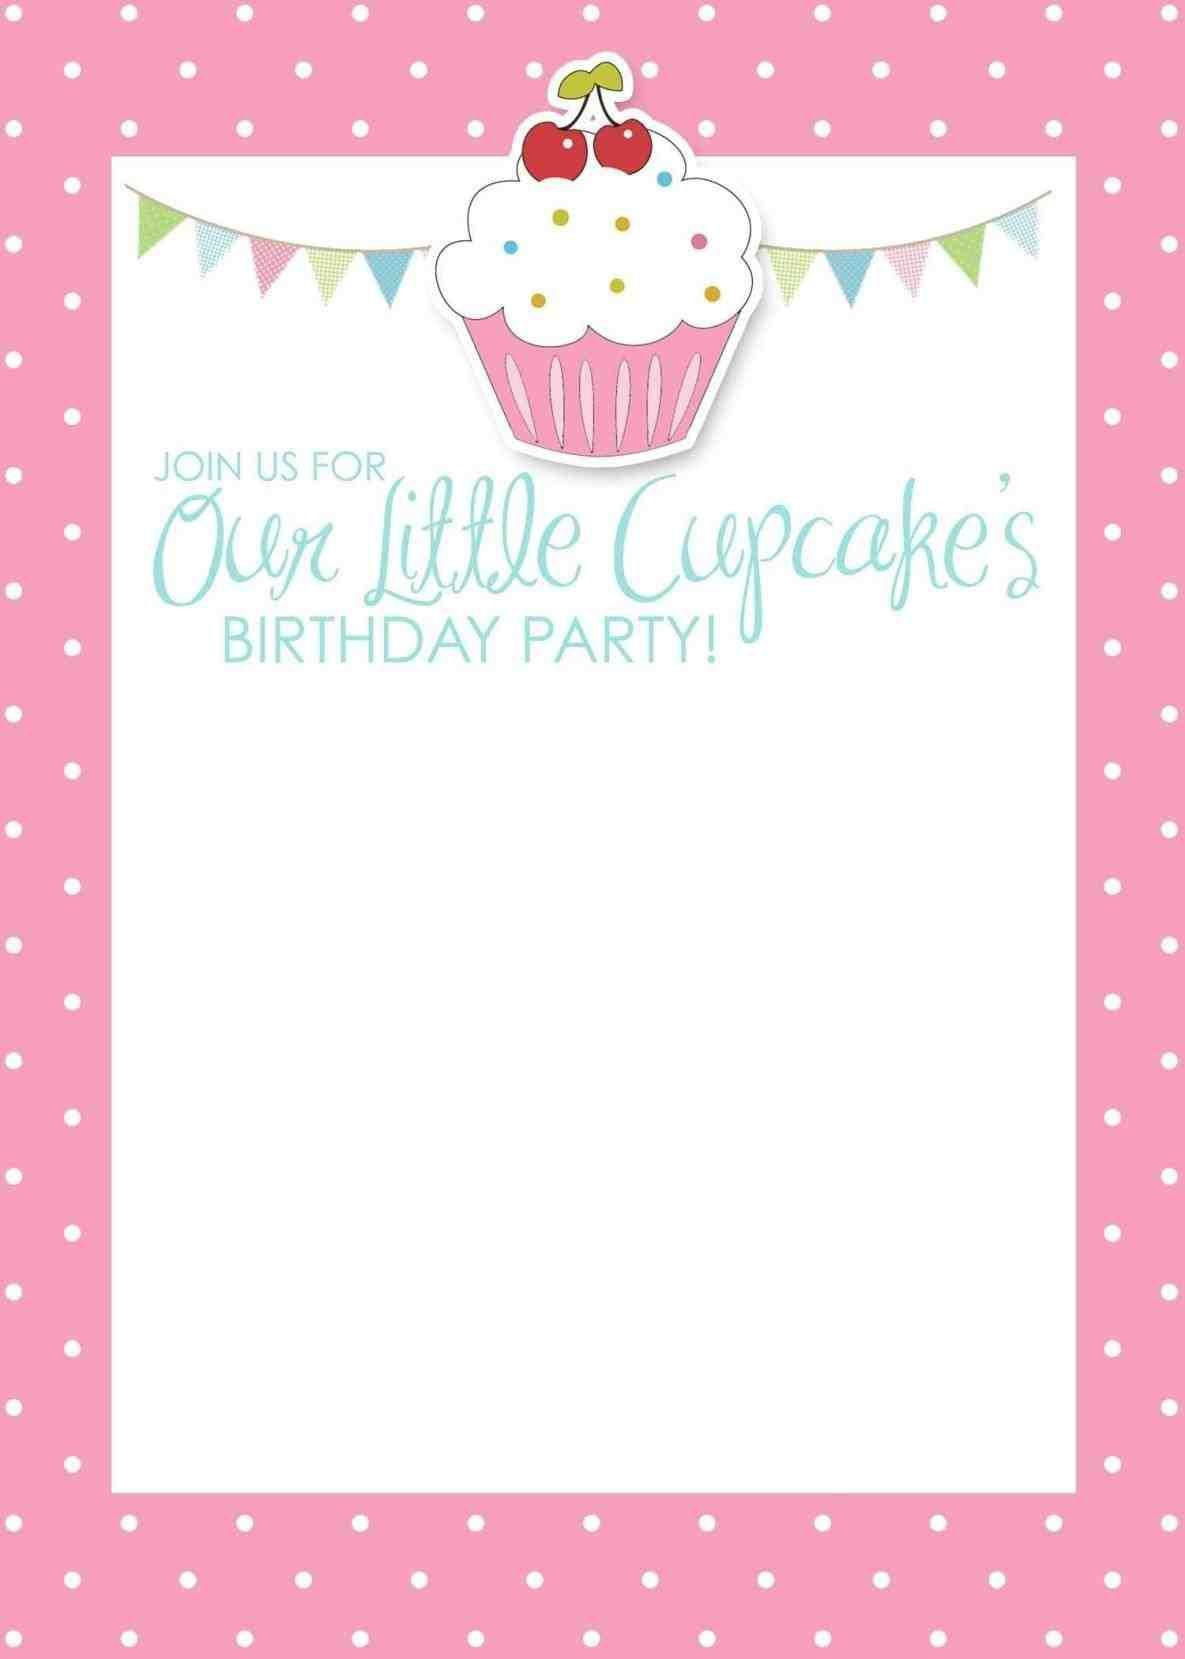 004 Fascinating Birthday Card Template For Word 2010 High Resolution  Greeting MicrosoftFull